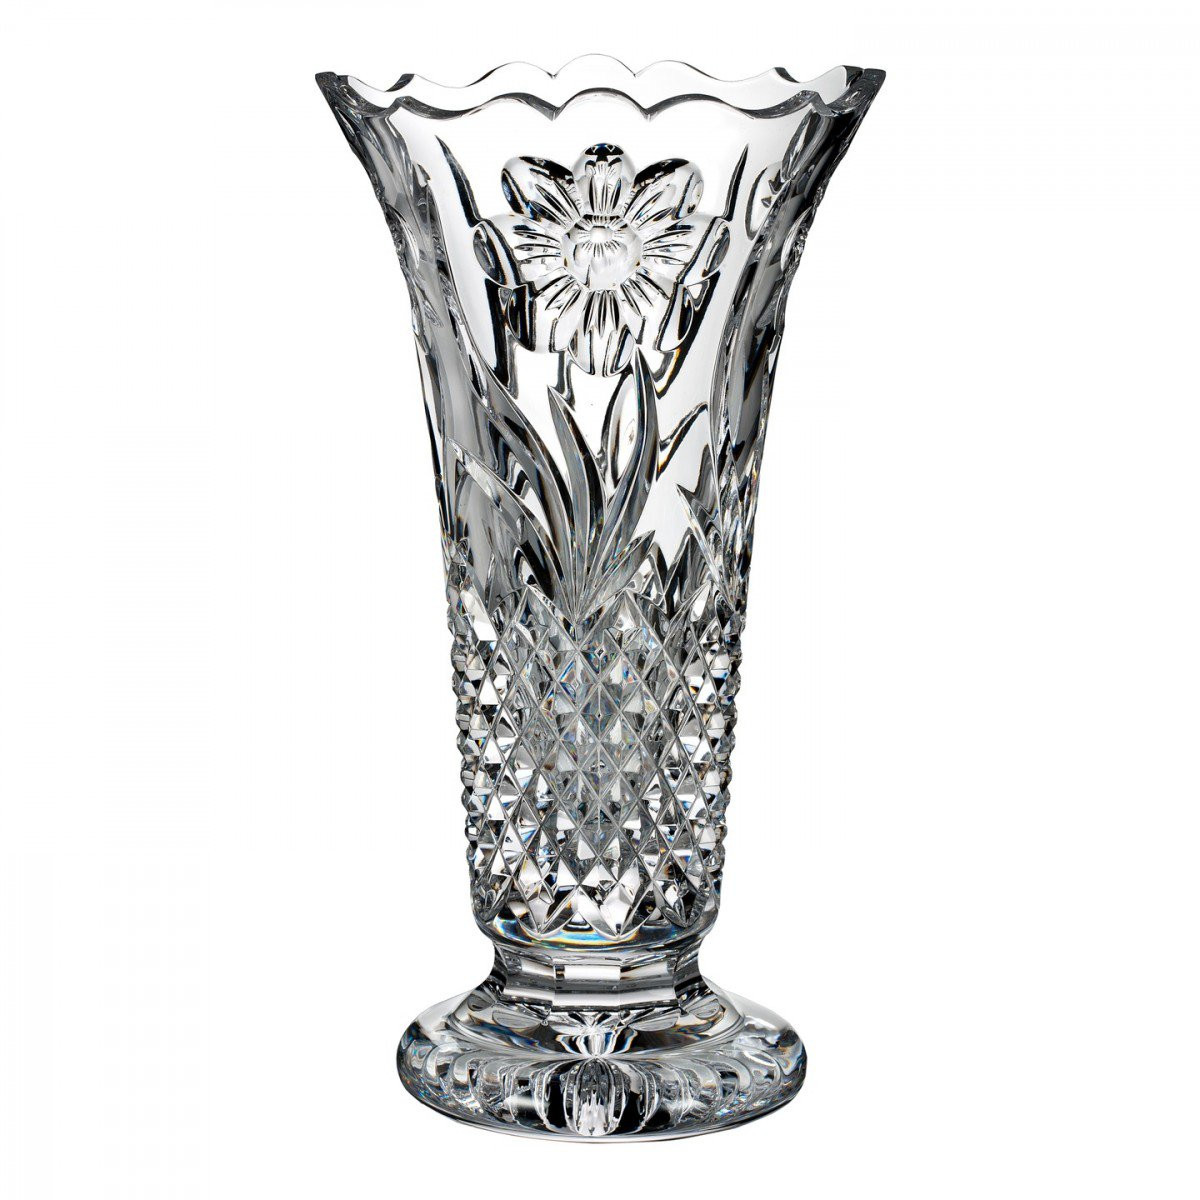 waterford maritana vase of flora fauna magnolia 12in vase house of waterford crystal us throughout flora fauna magnolia 12in vase